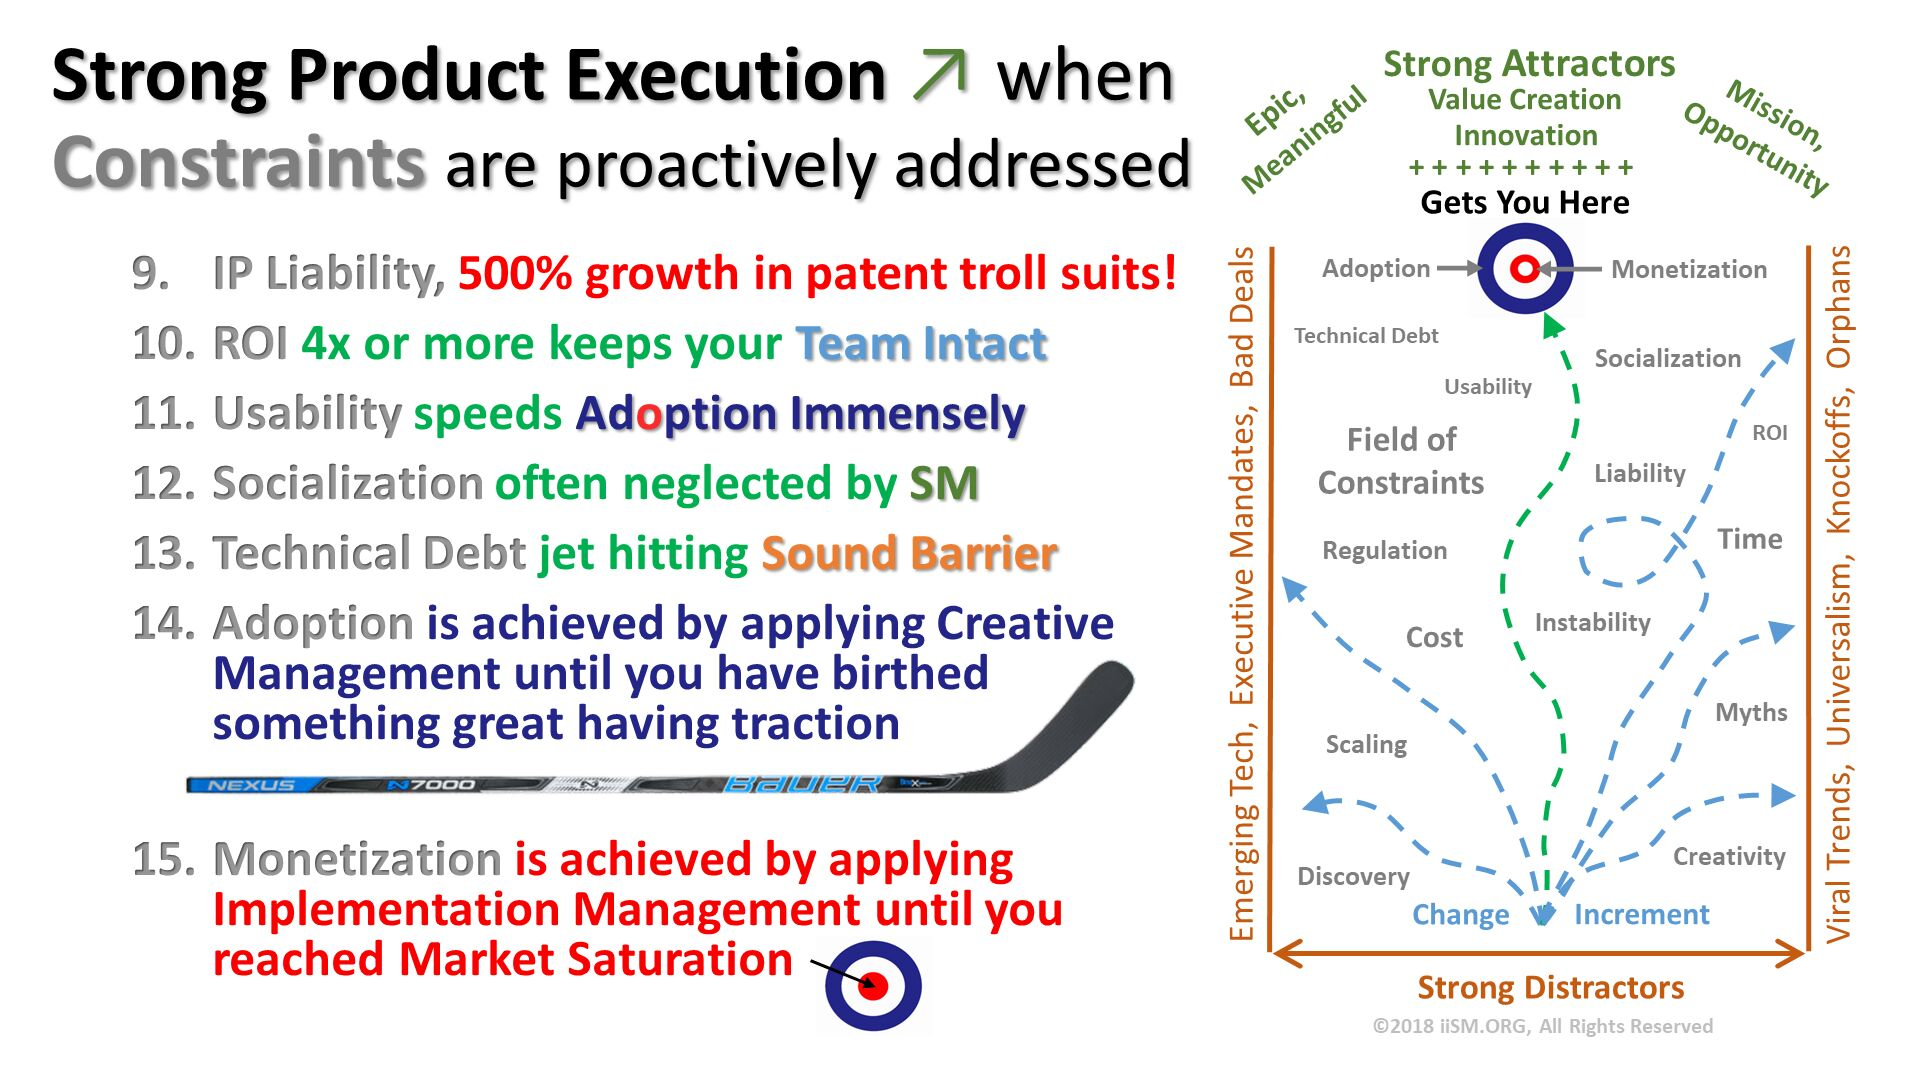 Strong Product Execution ↗ whenConstraints are proactively addressed. IP Liability, 500% growth in patent troll suits! ROI 4x or more keeps your Team Intact Usability speeds Adoption Immensely  Socialization often neglected by SM Technical Debt jet hitting Sound Barrier Adoption is achieved by applying Creative Management until you have birthed something great having traction Monetization is achieved by applying Implementation Management until you reached Market Saturation   .